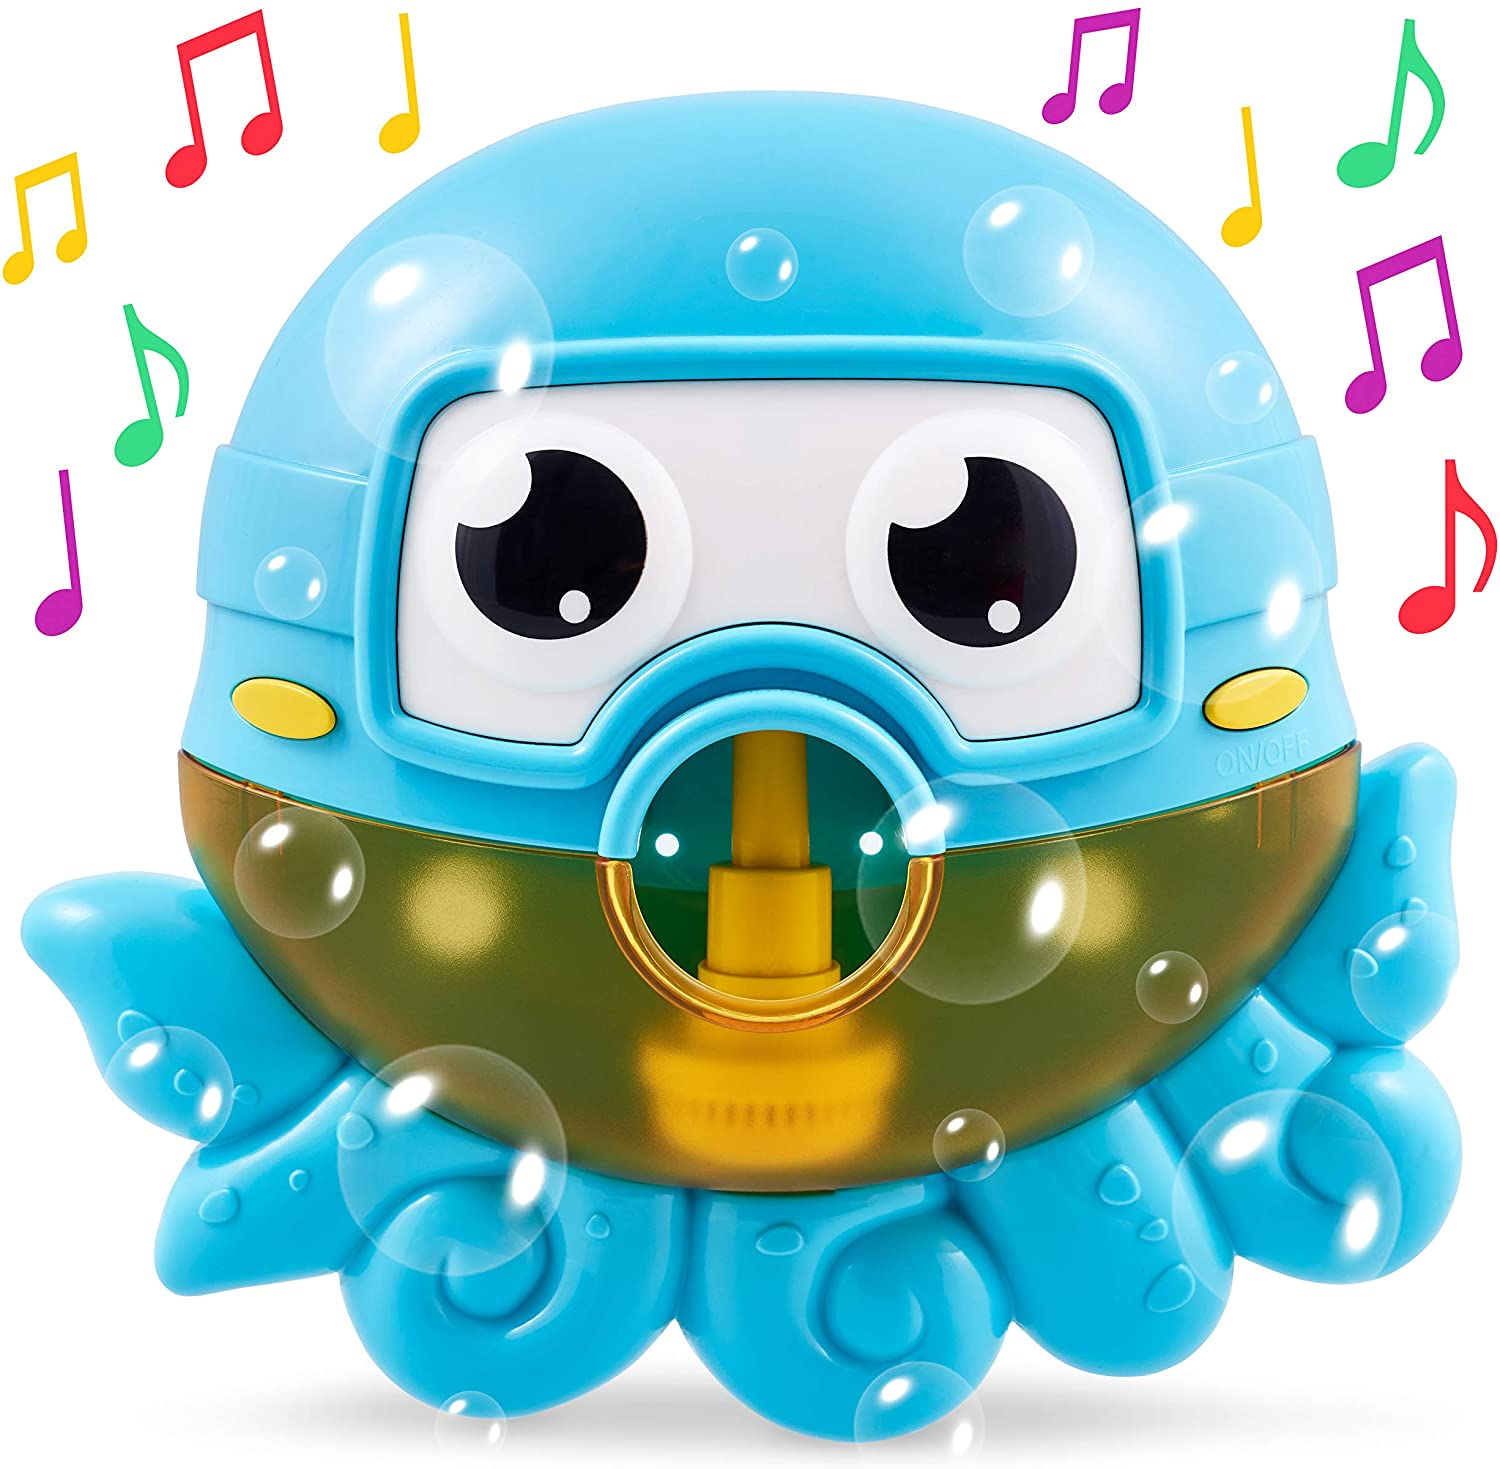 CHUCHIK Octopus Bath Toy. Bubble Bath Maker for The Bathtub. Blows Bubbles and Plays 24 Children's Songs – Baby, Toddler Kids Bath Toys Makes Great Gifts for Toddlers – Sing-Along Bath Bubble Machine